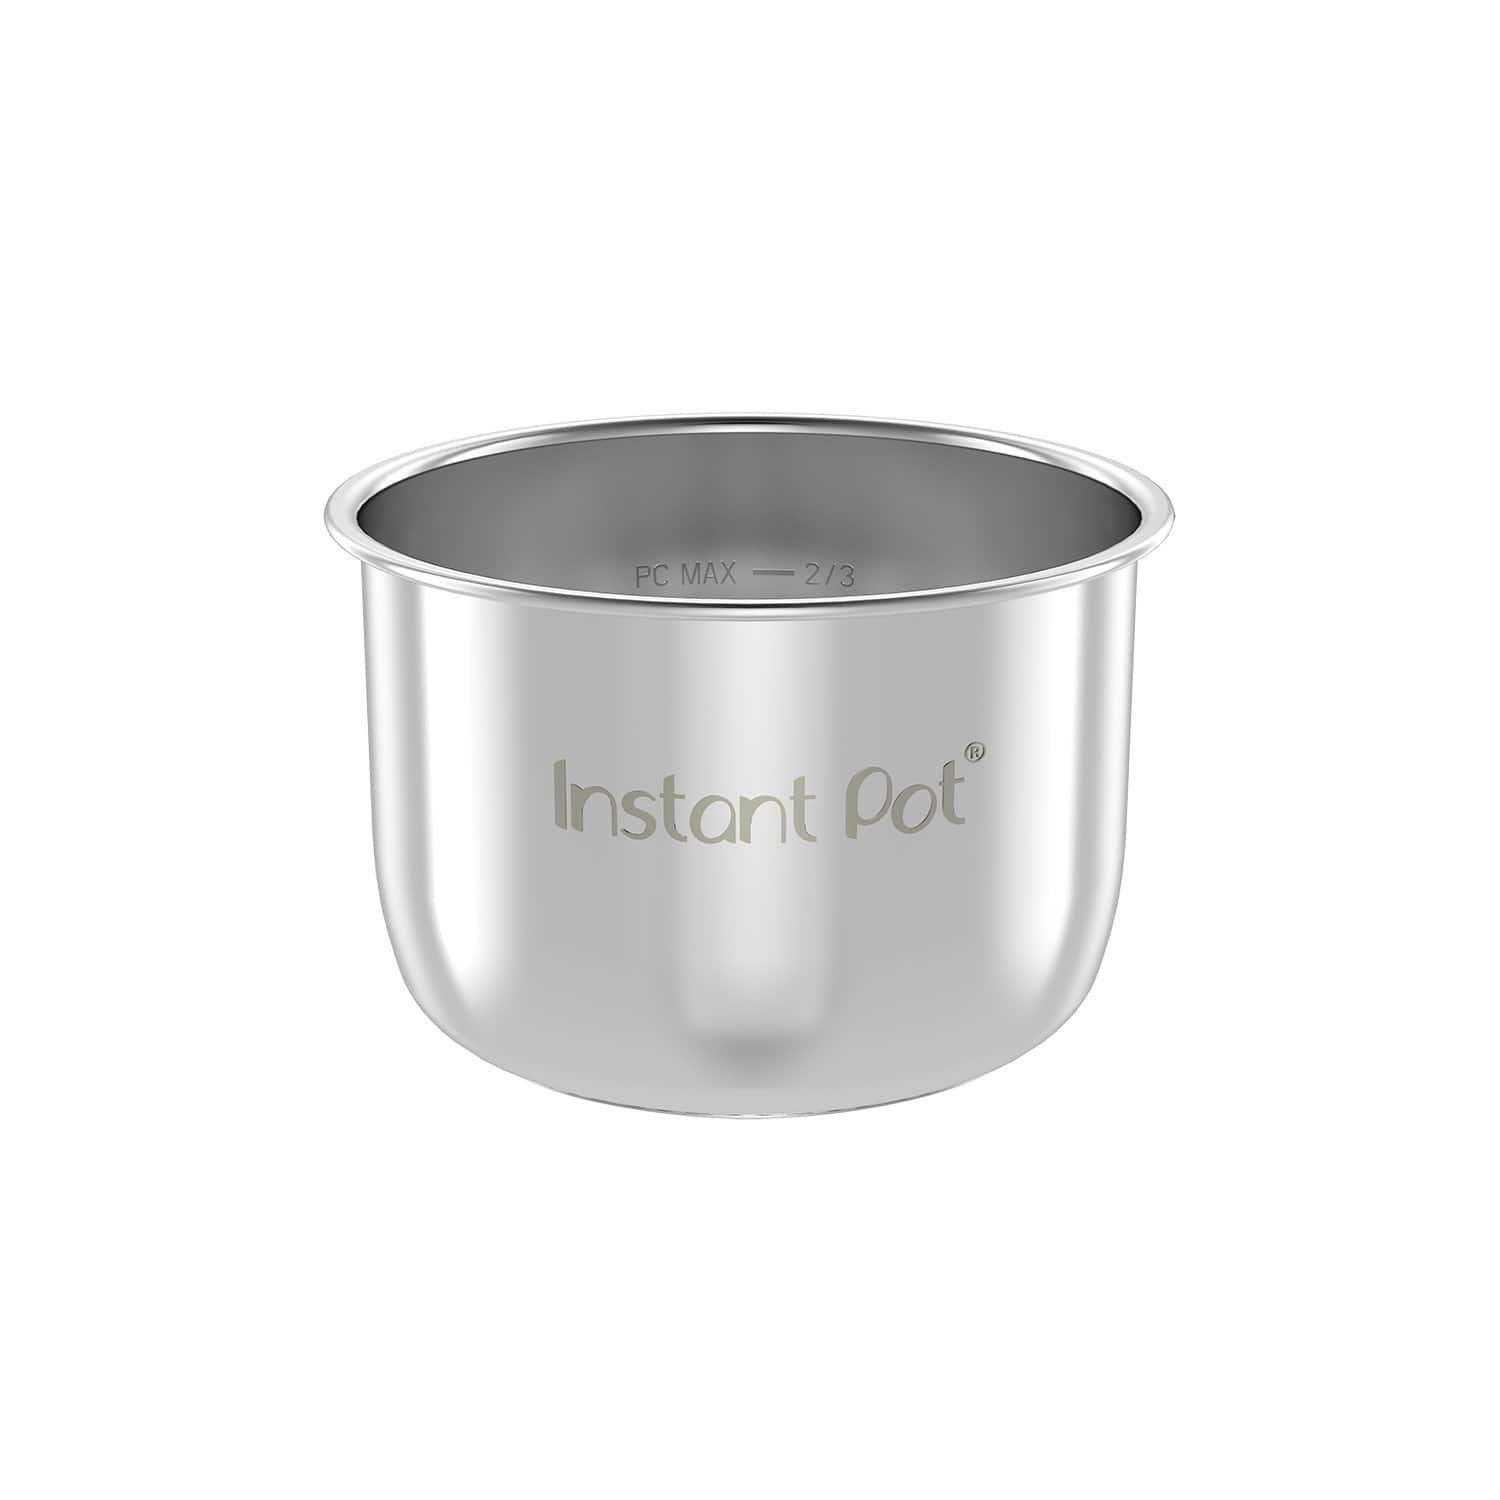 Genuine Instant Pot Stainless Steel Inner Cooking Pot - Mini 3 Quart $14.96 FS w/ Prime @Amazon